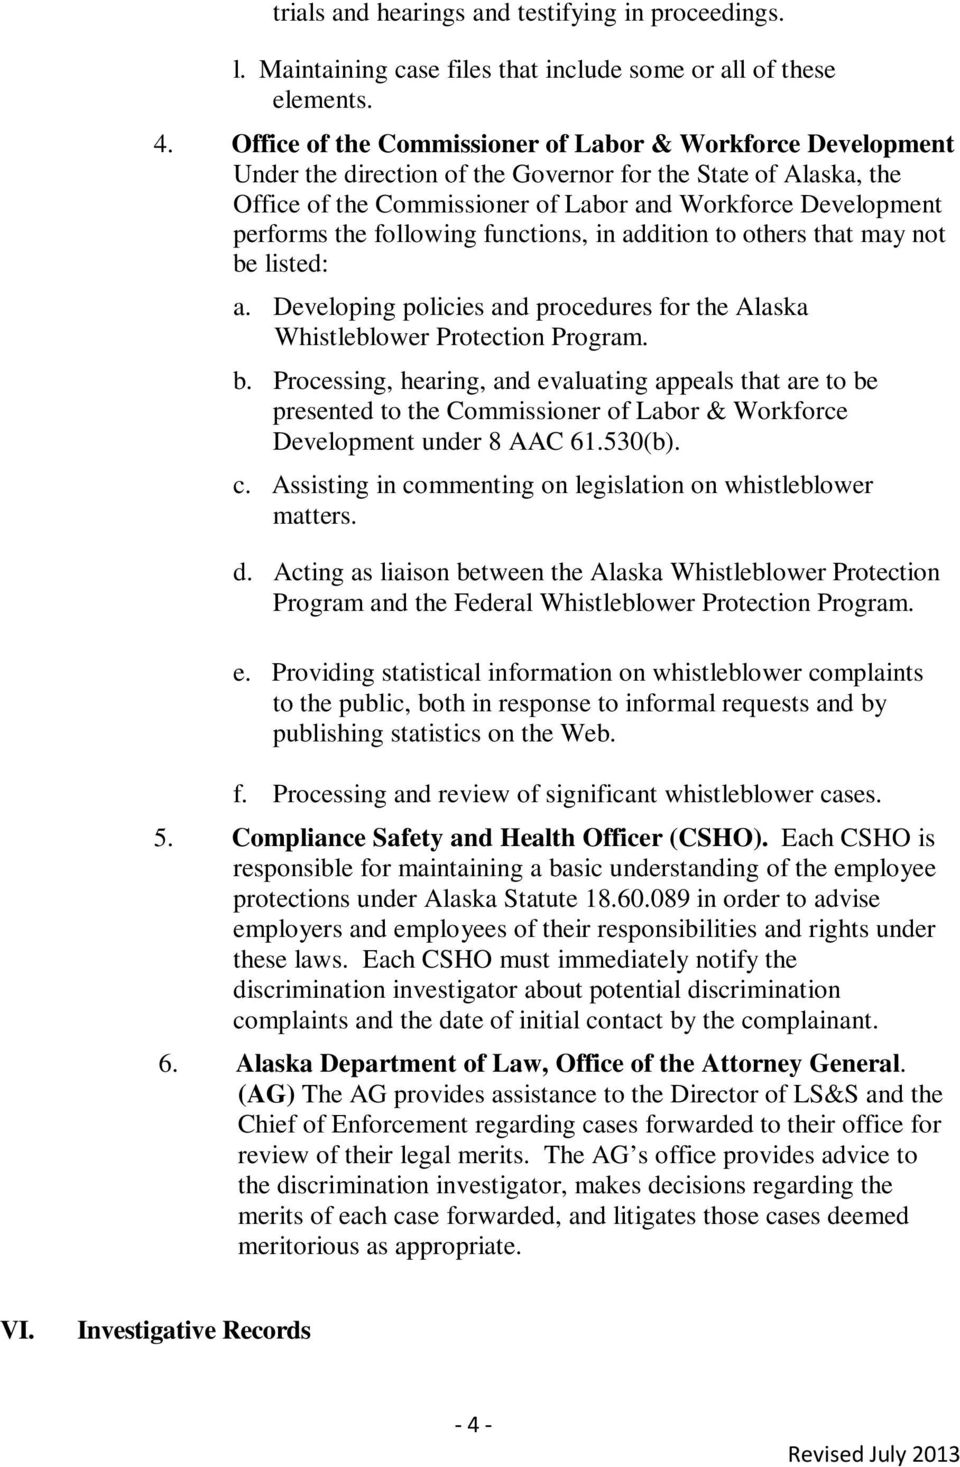 following functions, in addition to others that may not be listed: a. Developing policies and procedures for the Alaska Whistleblower Protection Program. b. Processing, hearing, and evaluating appeals that are to be presented to the Commissioner of Labor & Workforce Development under 8 AAC 61.